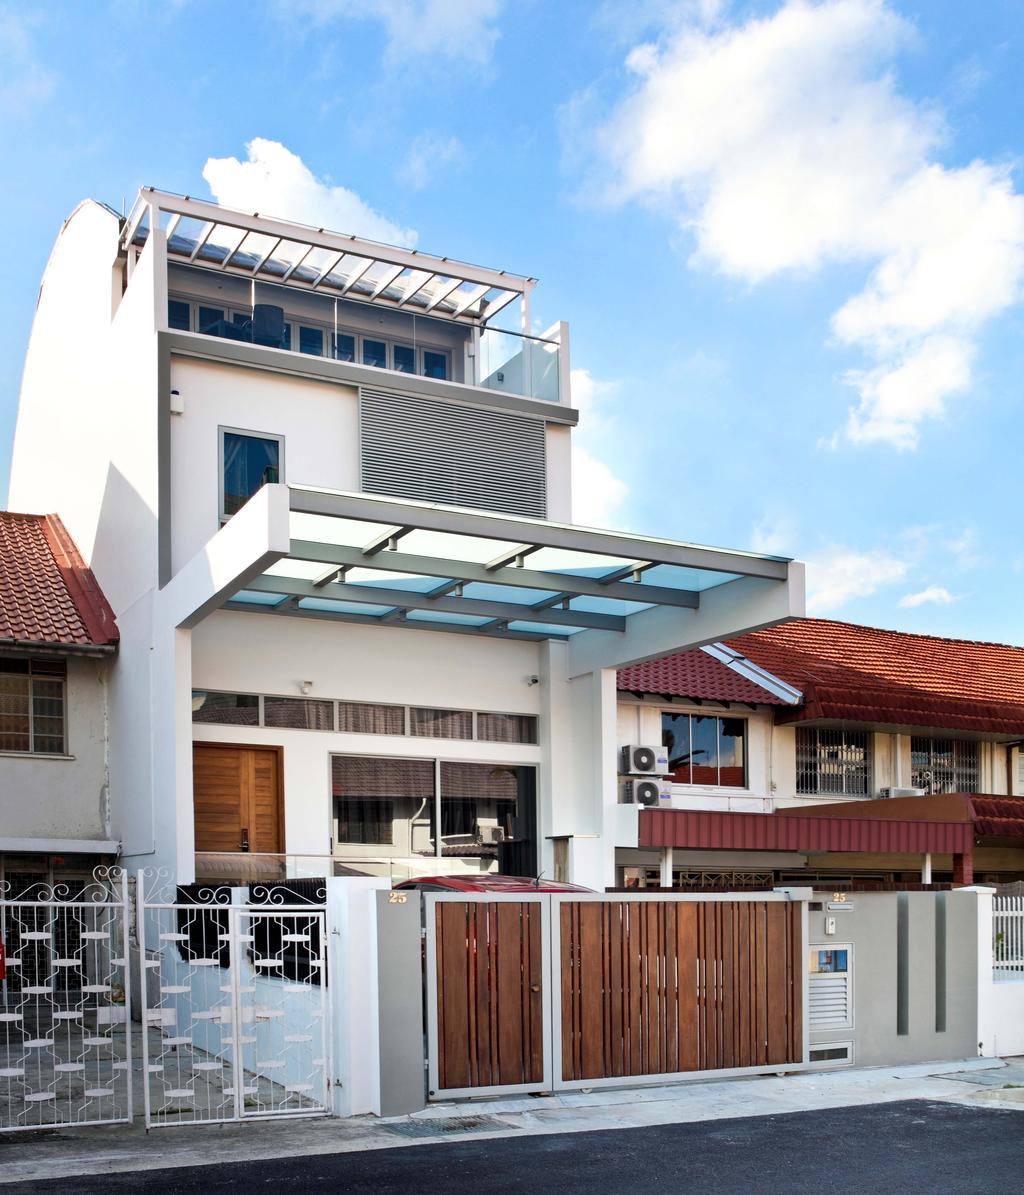 Traditional, Landed, Siang Kuang, Interior Designer, Yonder, House, Terrace, Roof, Tile Roof, Building, Housing